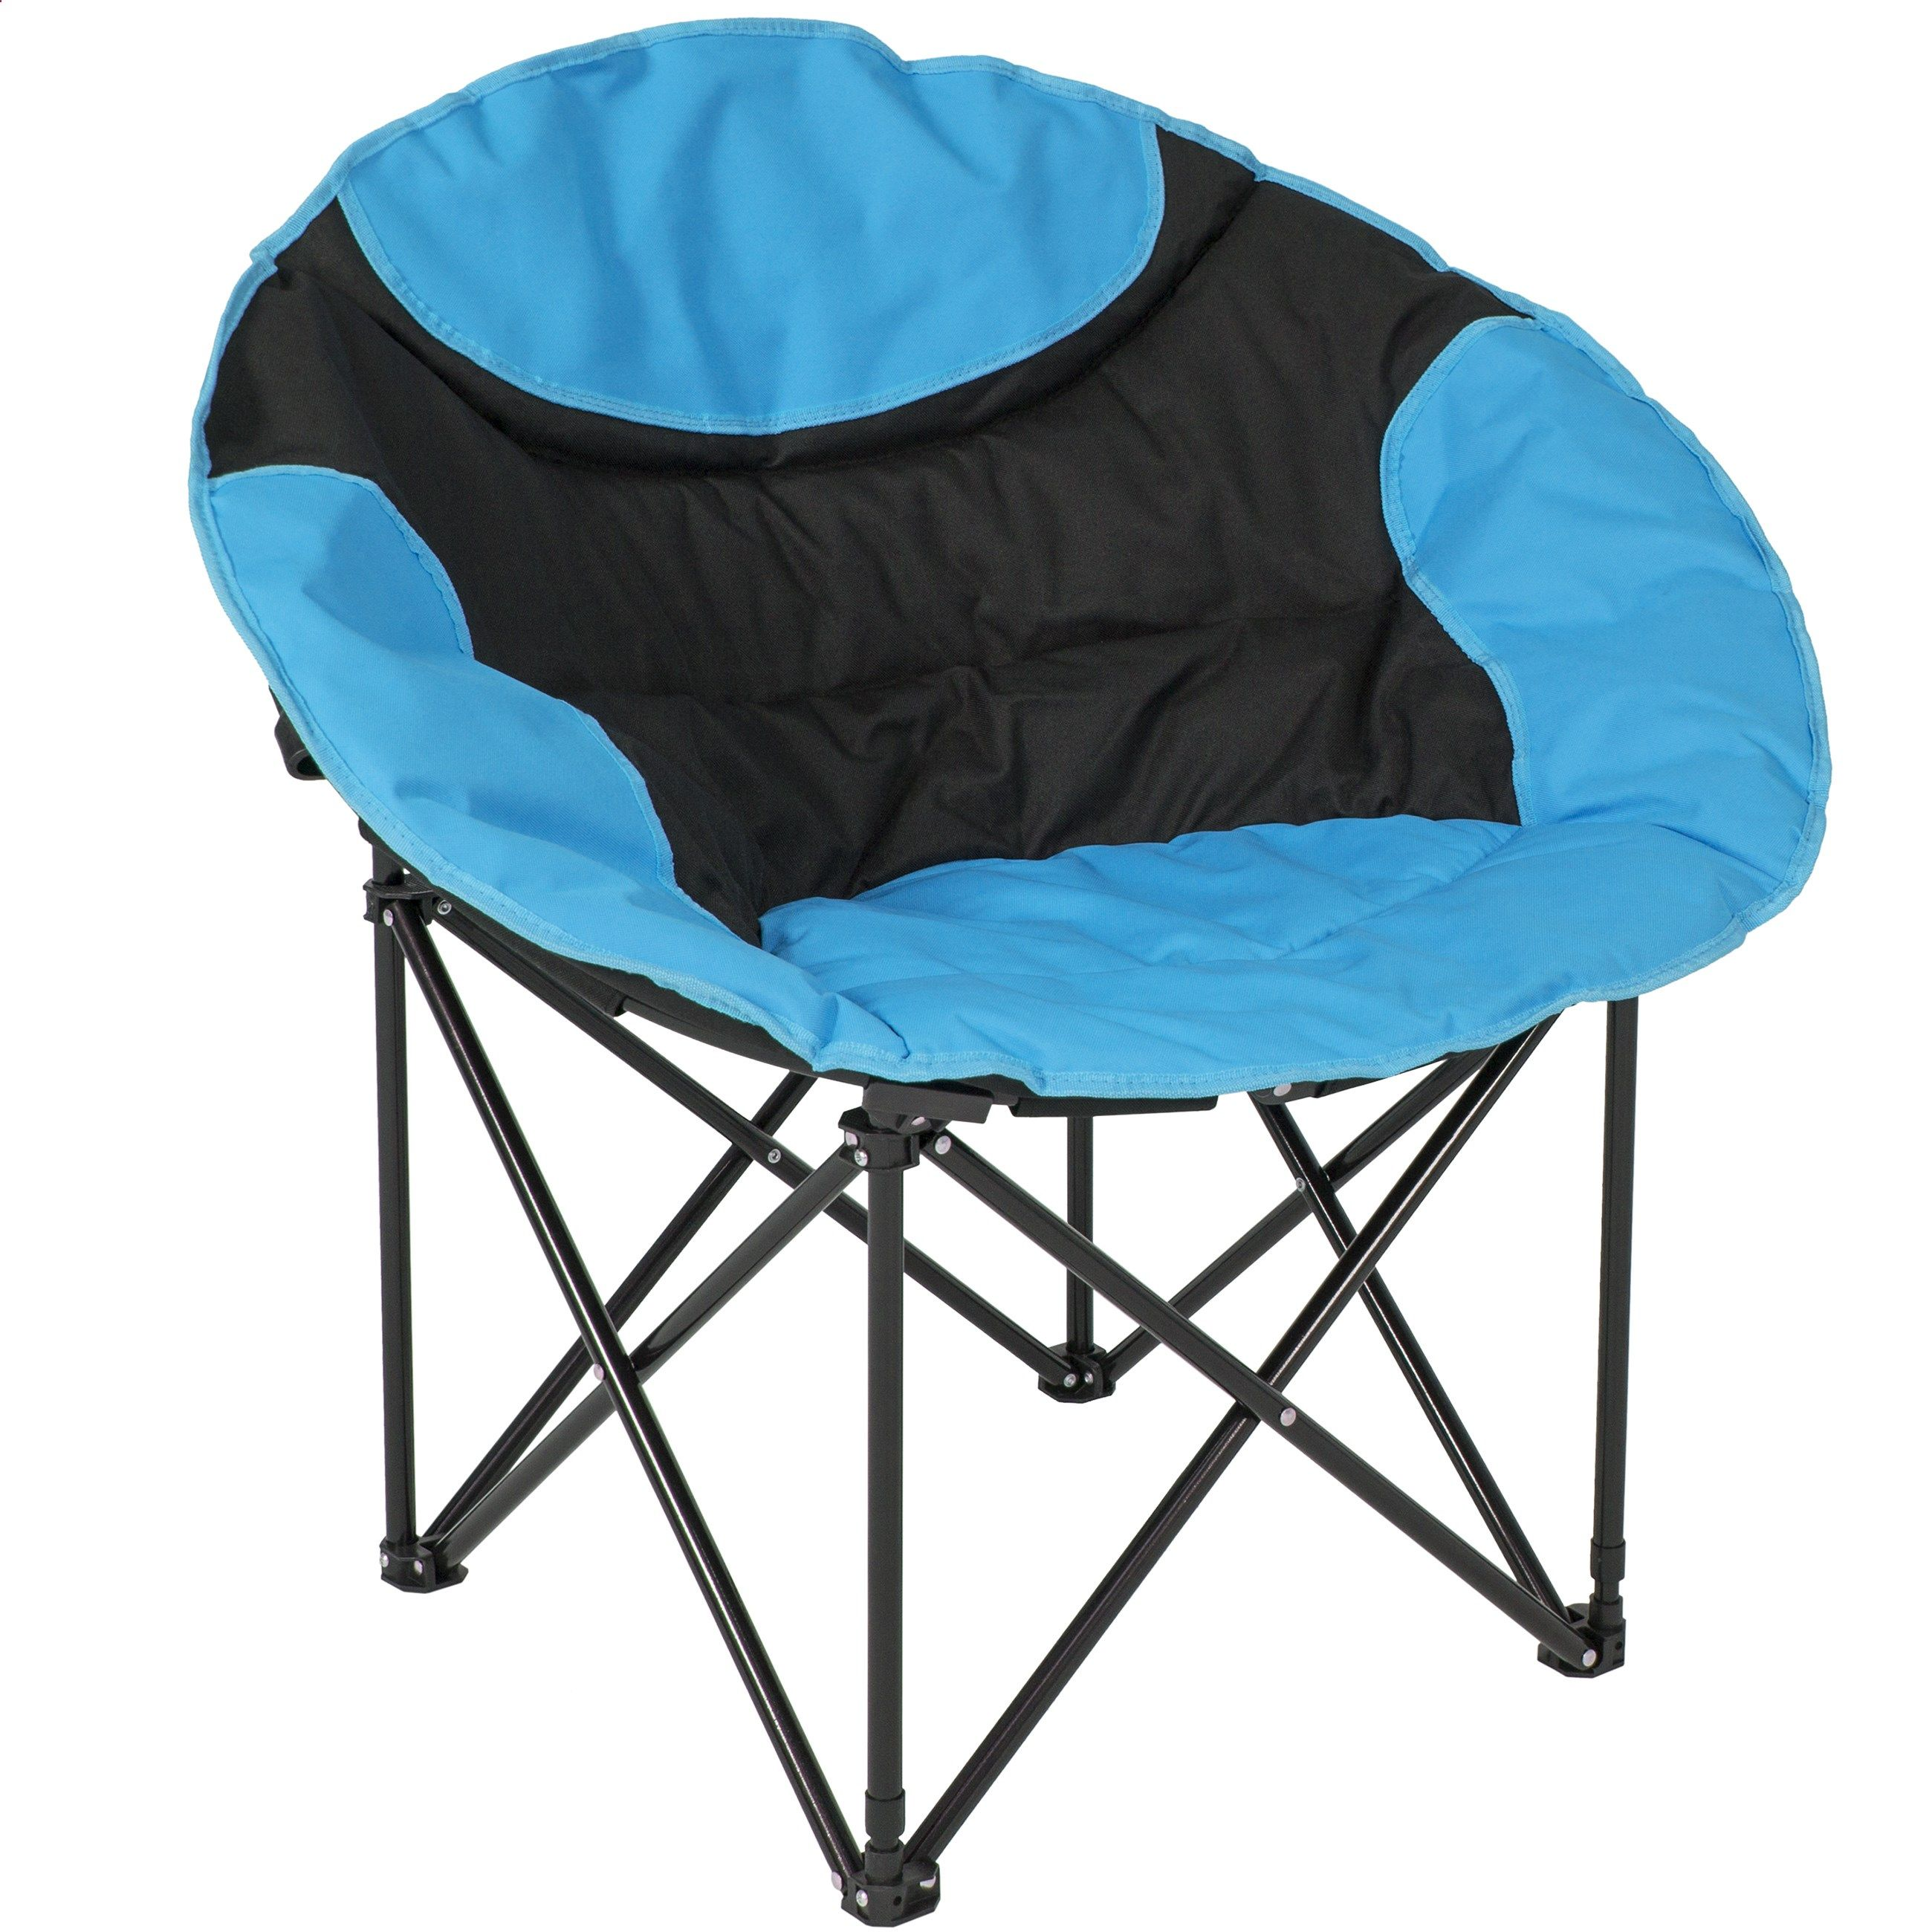 Camping Chairs Best Choice Products Folding Lightweight Moon